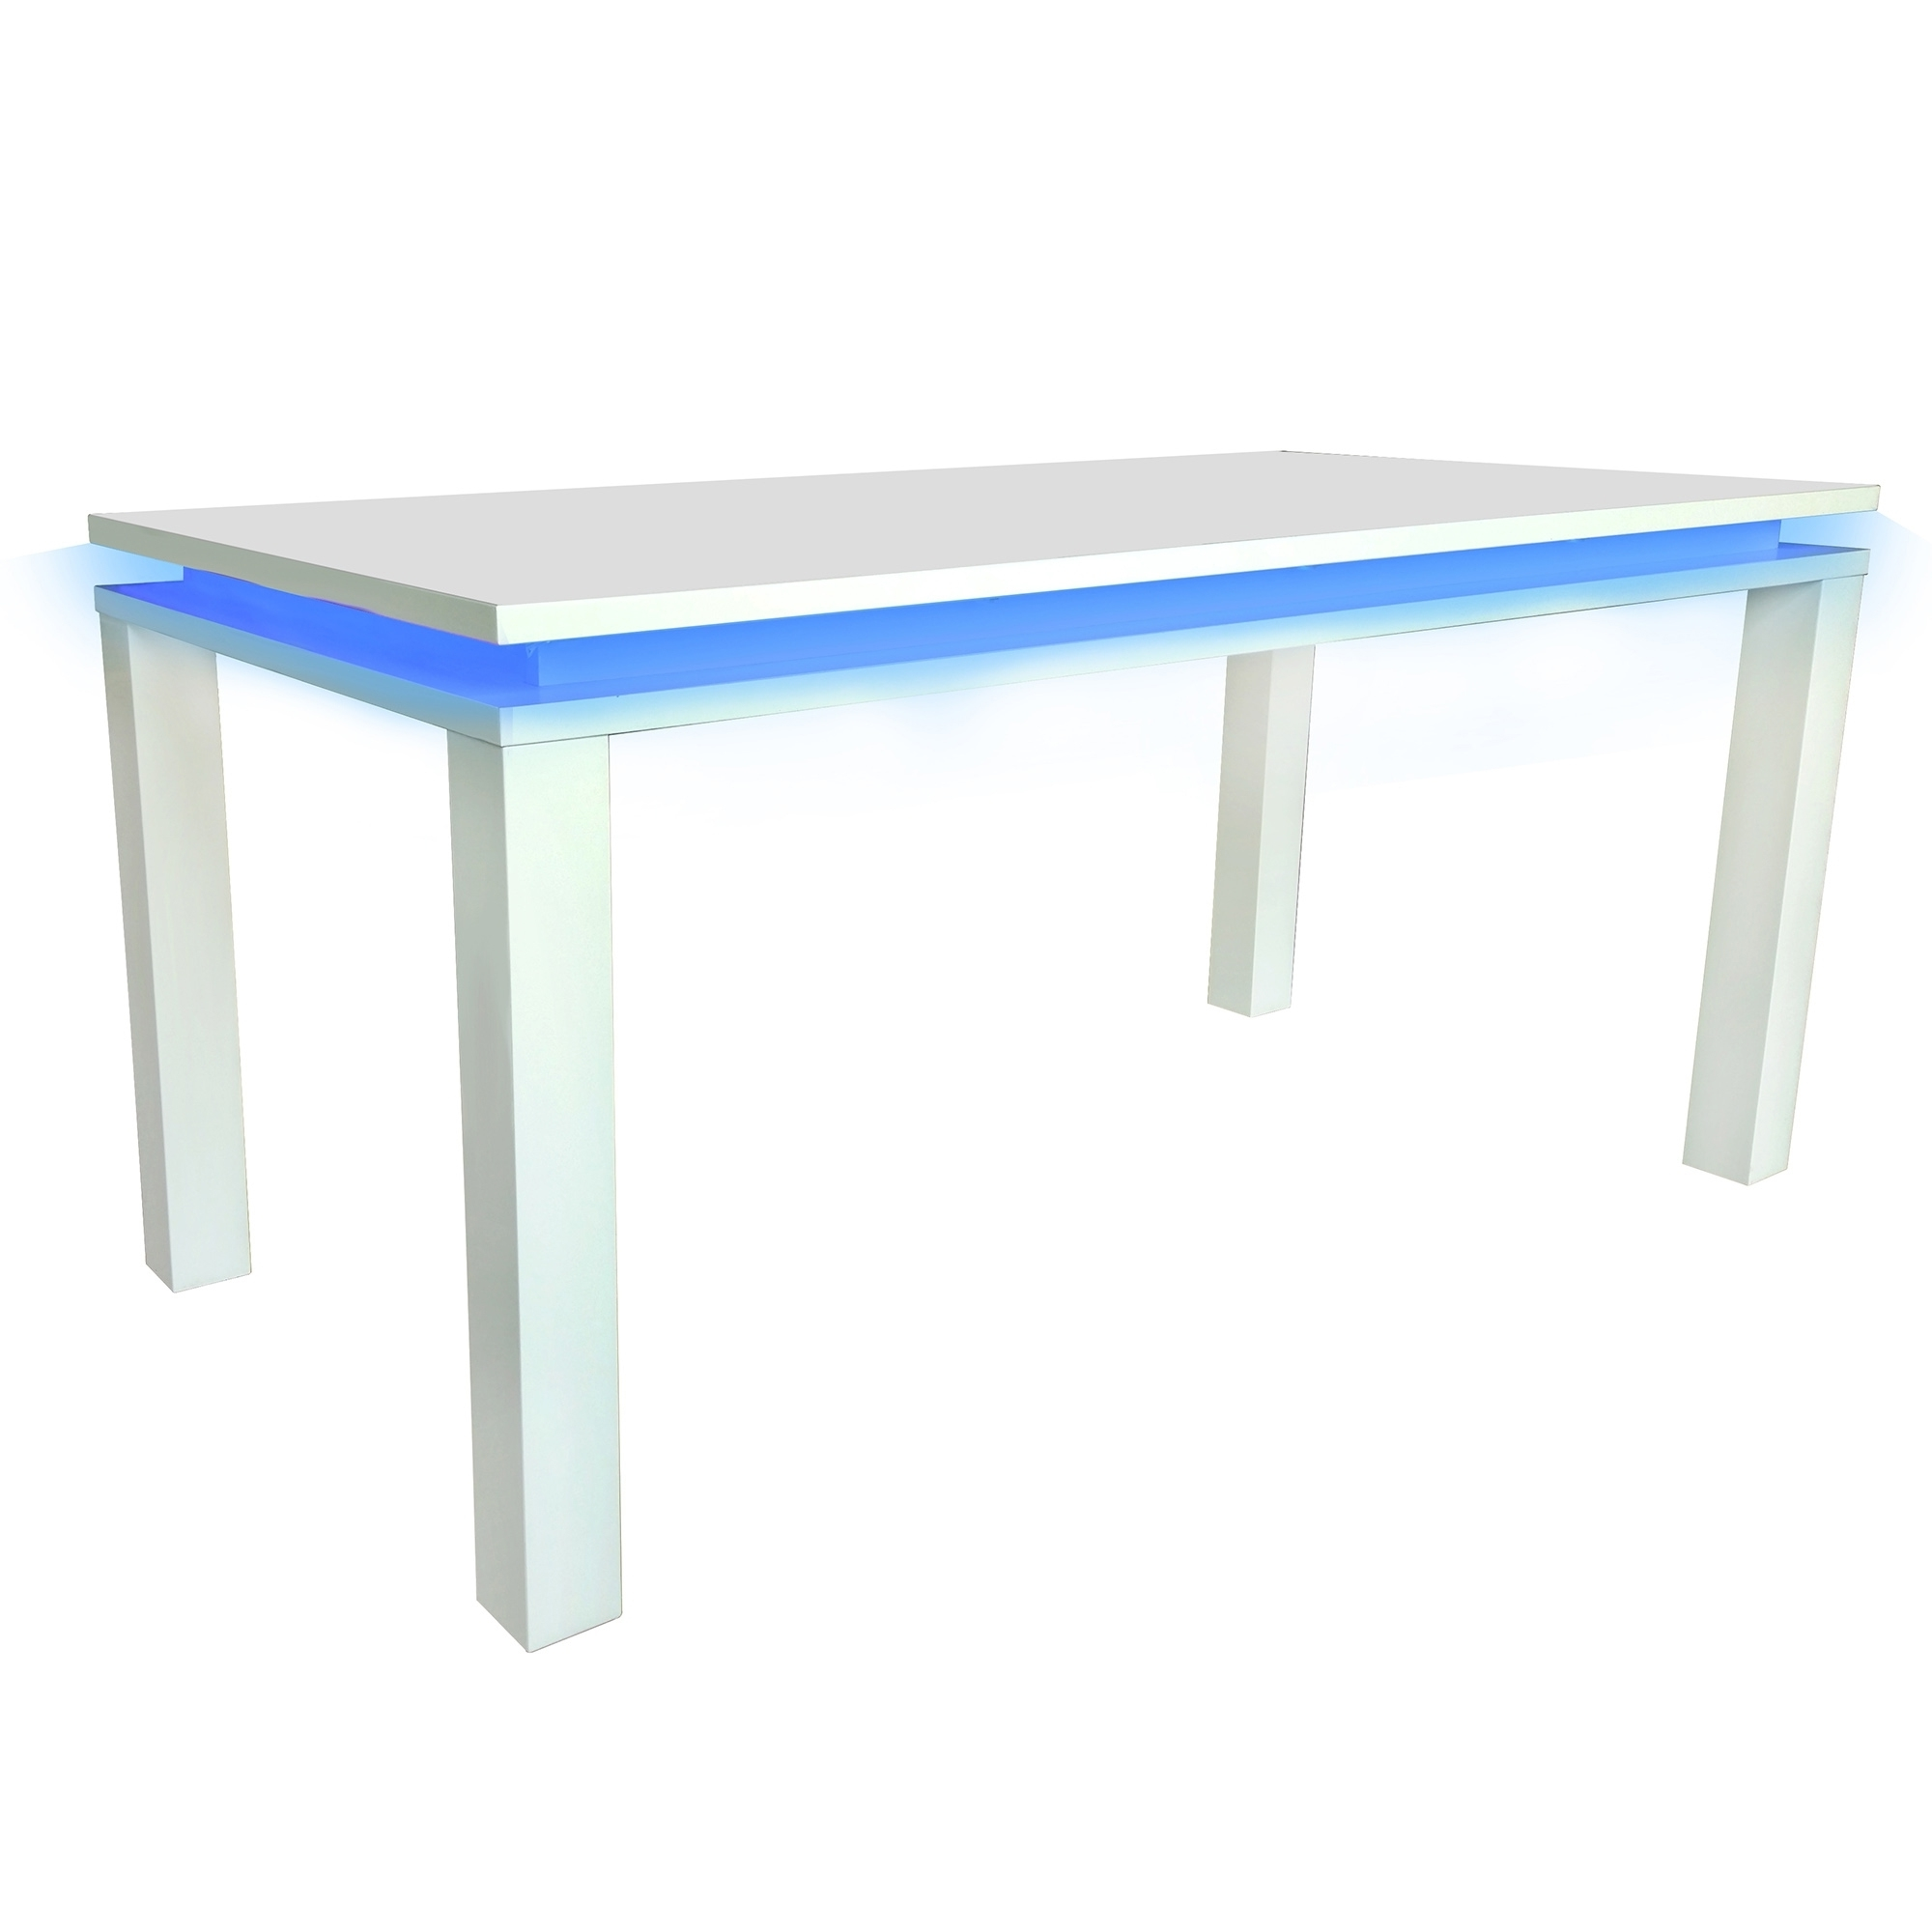 Picture of: Milano Led Dining Table Modern Light Up Furniture For Sale Online